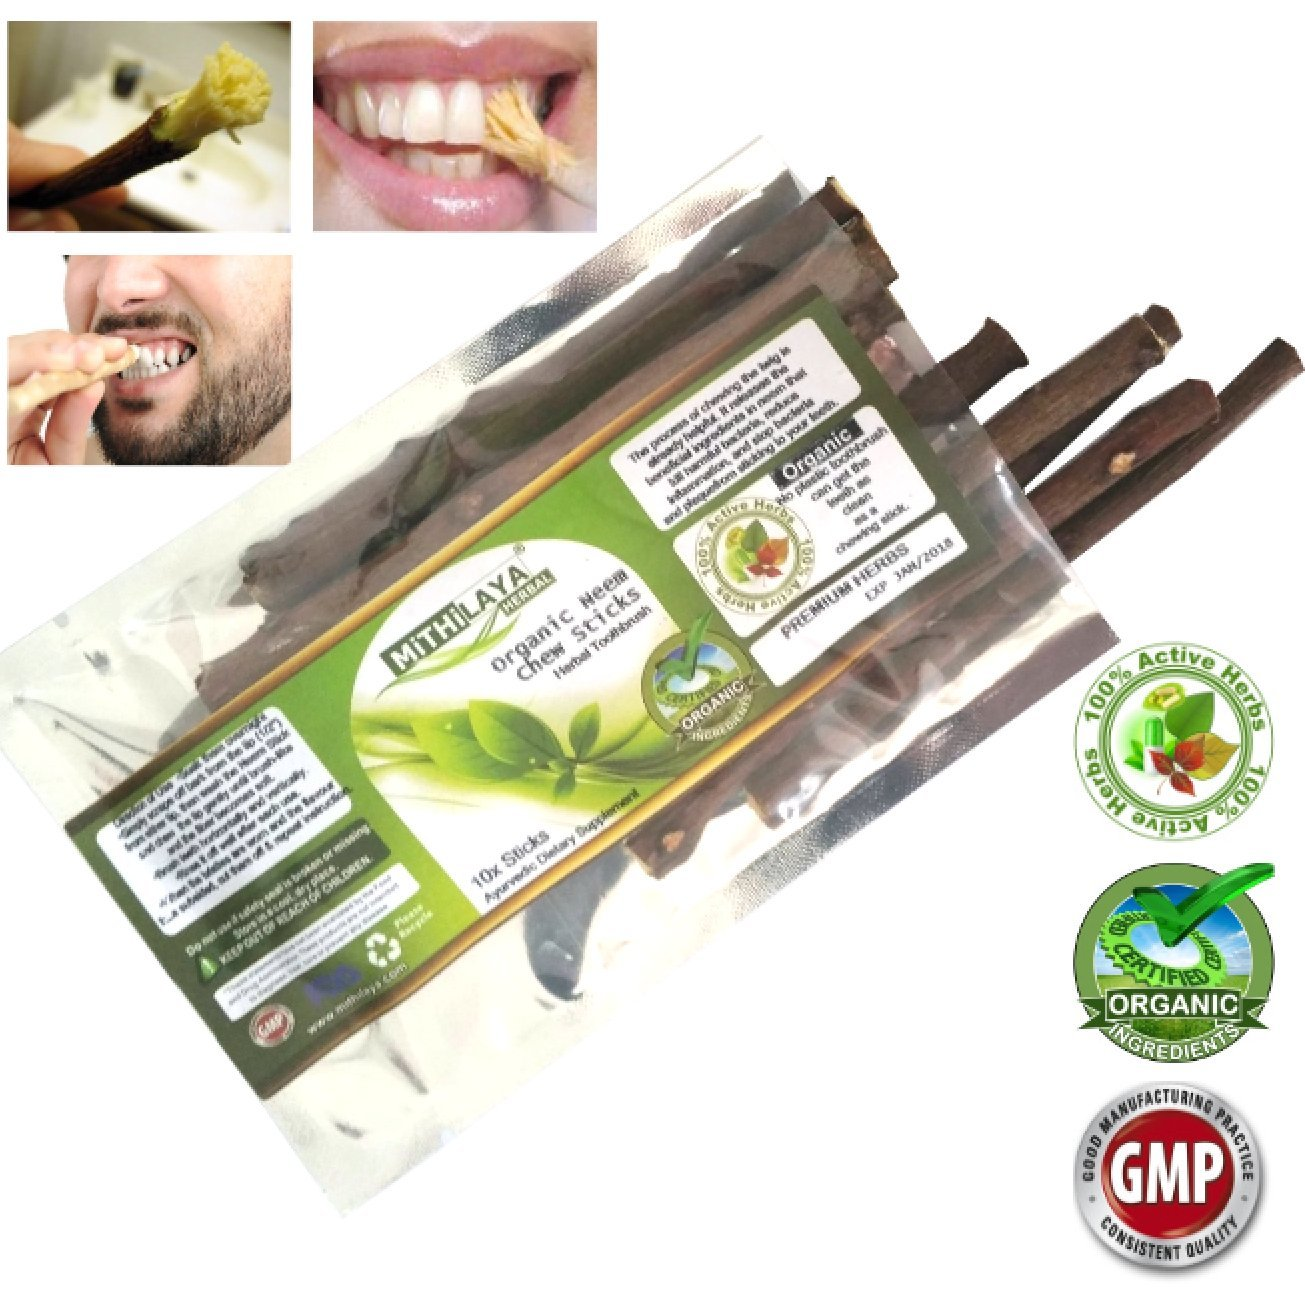 Mithilaya Herbal Neem Toothbrush Chew Sticks Natural Wild Organic Traditional lot of 10 Sticks